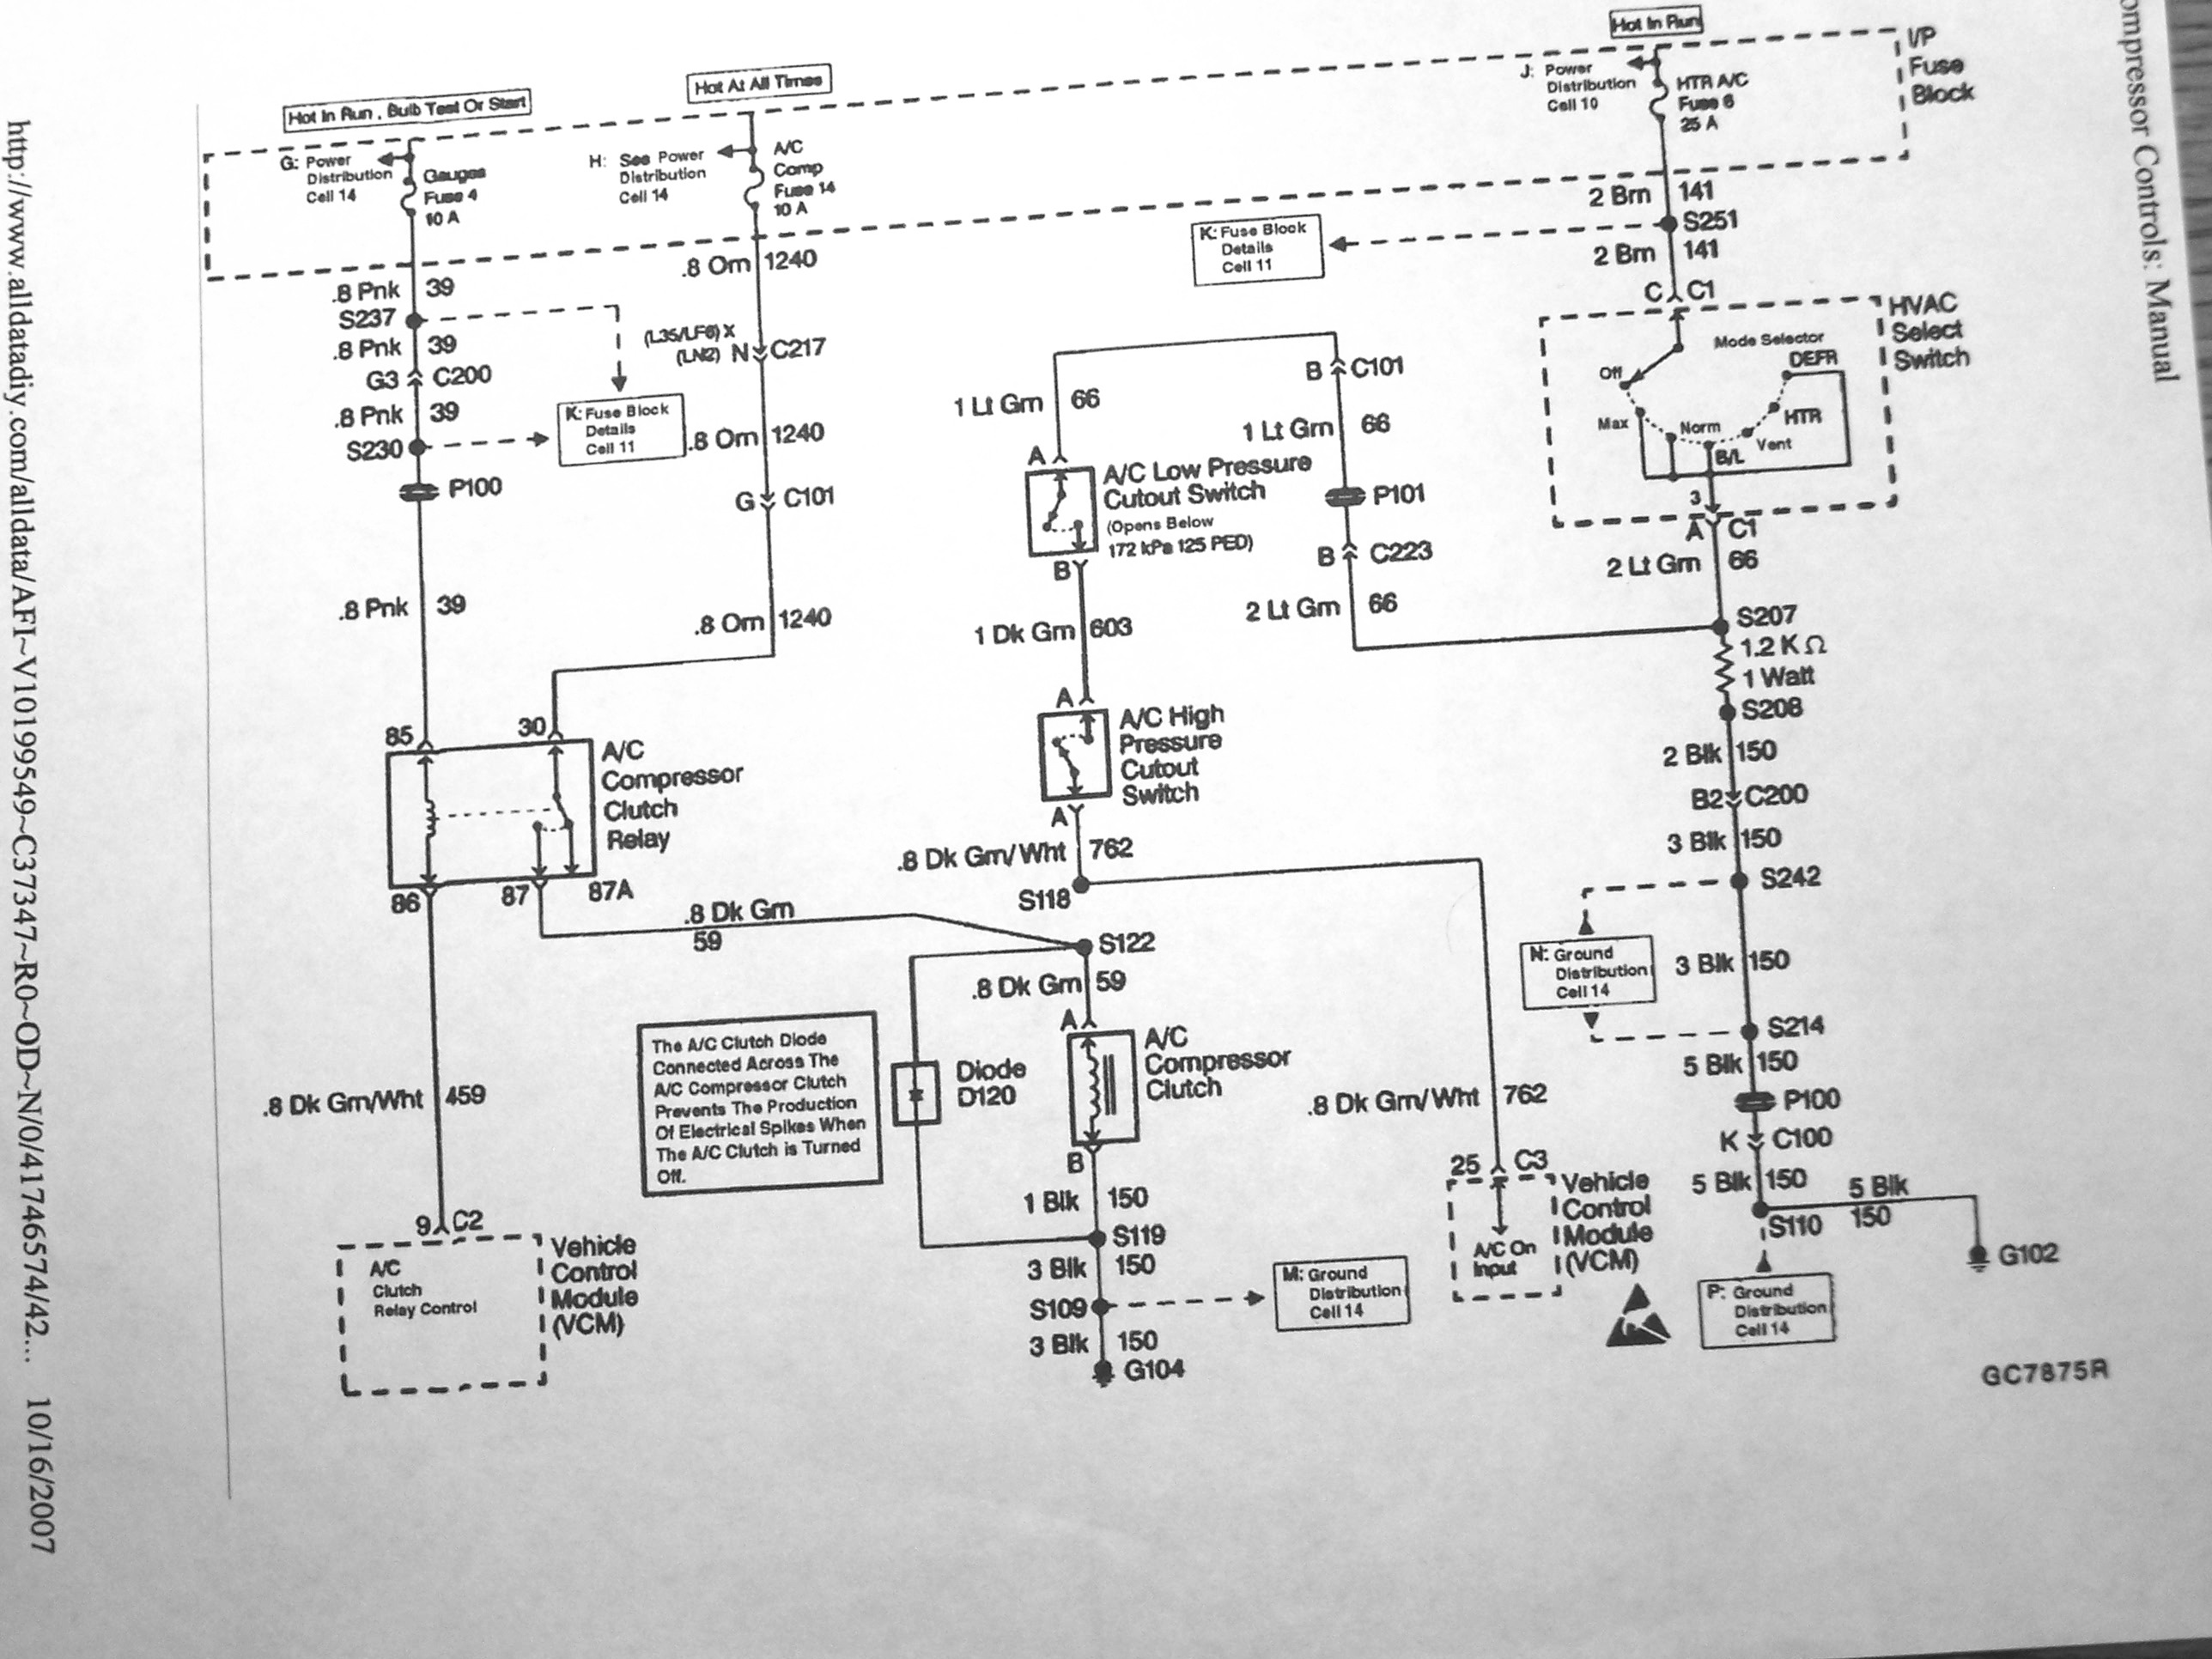 95 chevy g20 ac wiring diagram tech support forum click image for larger version name chevy25g views 2182 size 7243 asfbconference2016 Images